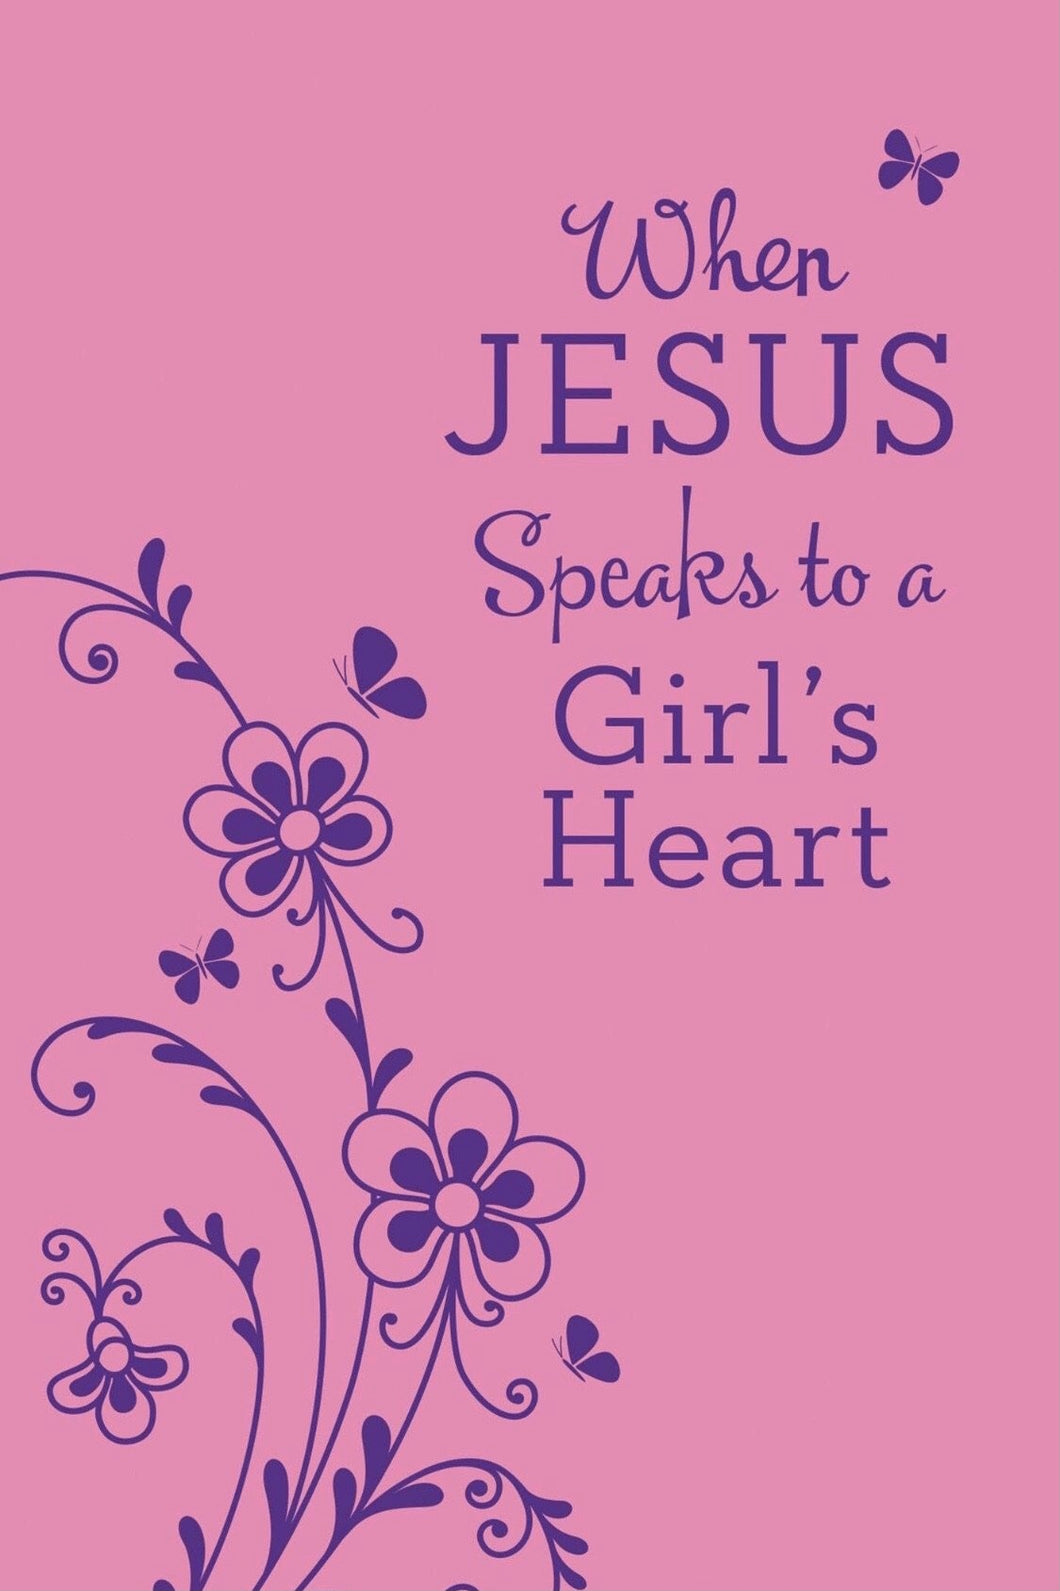 When Jesus Speaks to a Girl's Heart